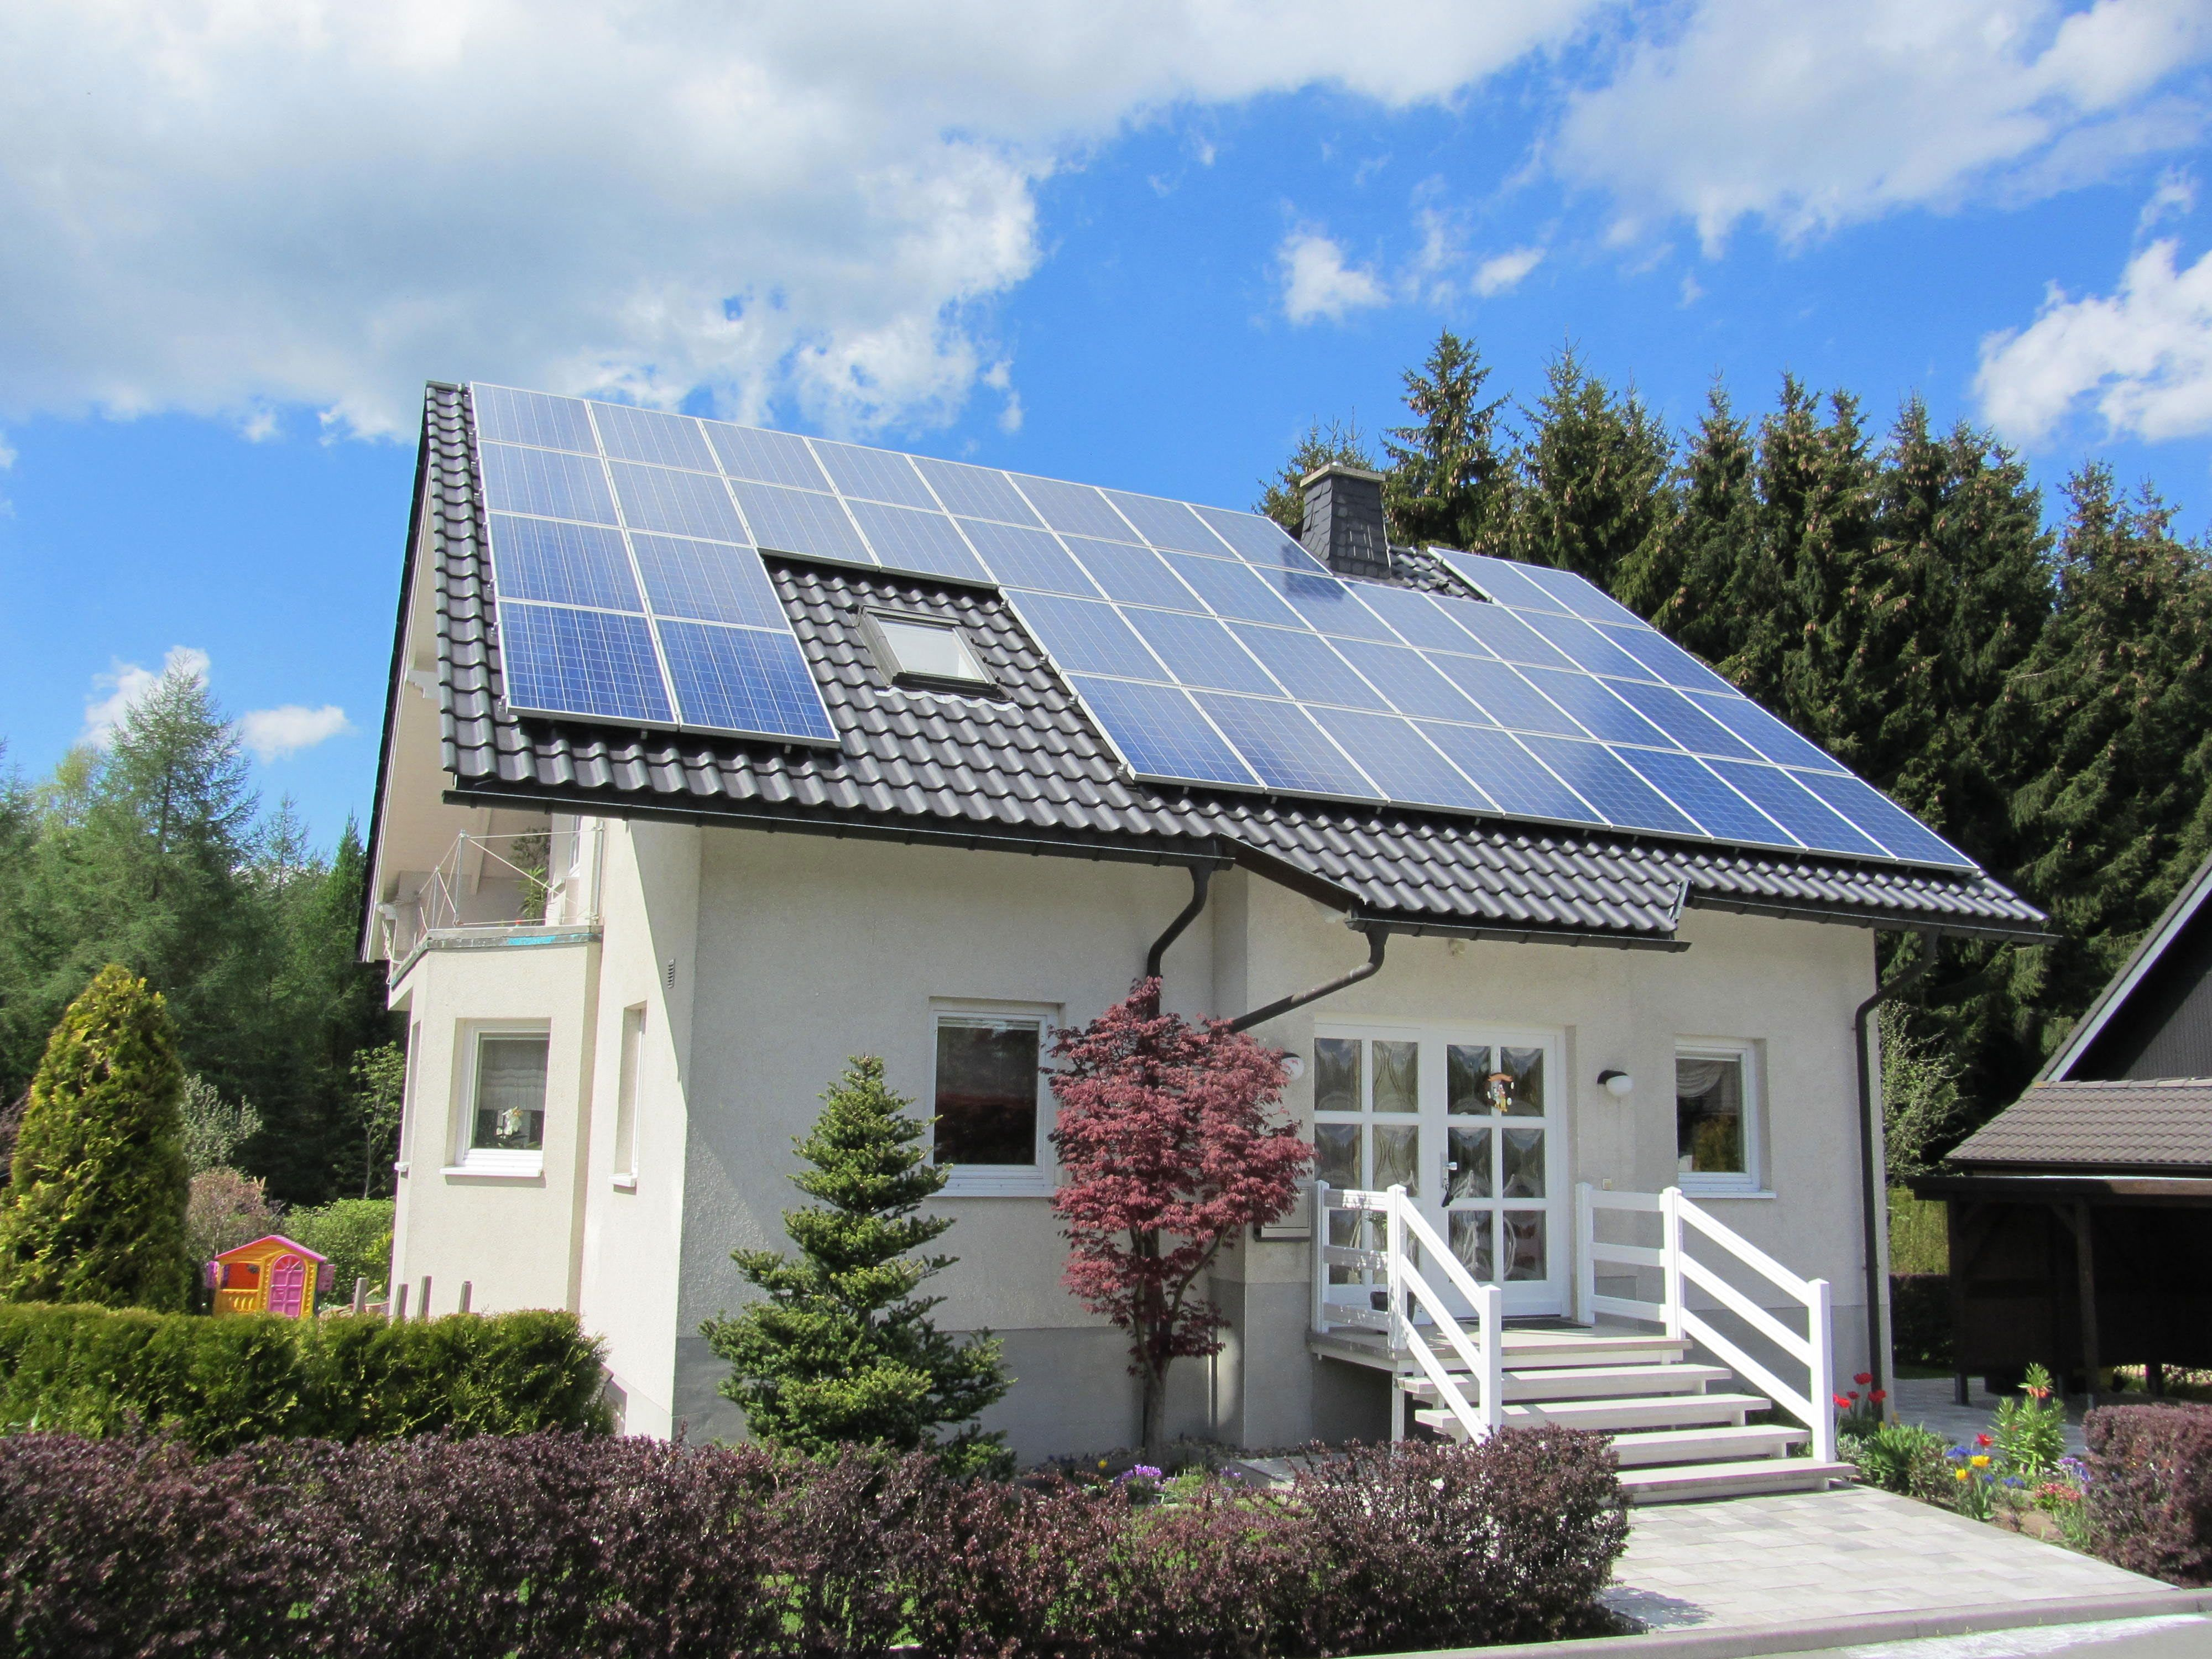 Free Your Home Through Off Grid Solar Panels